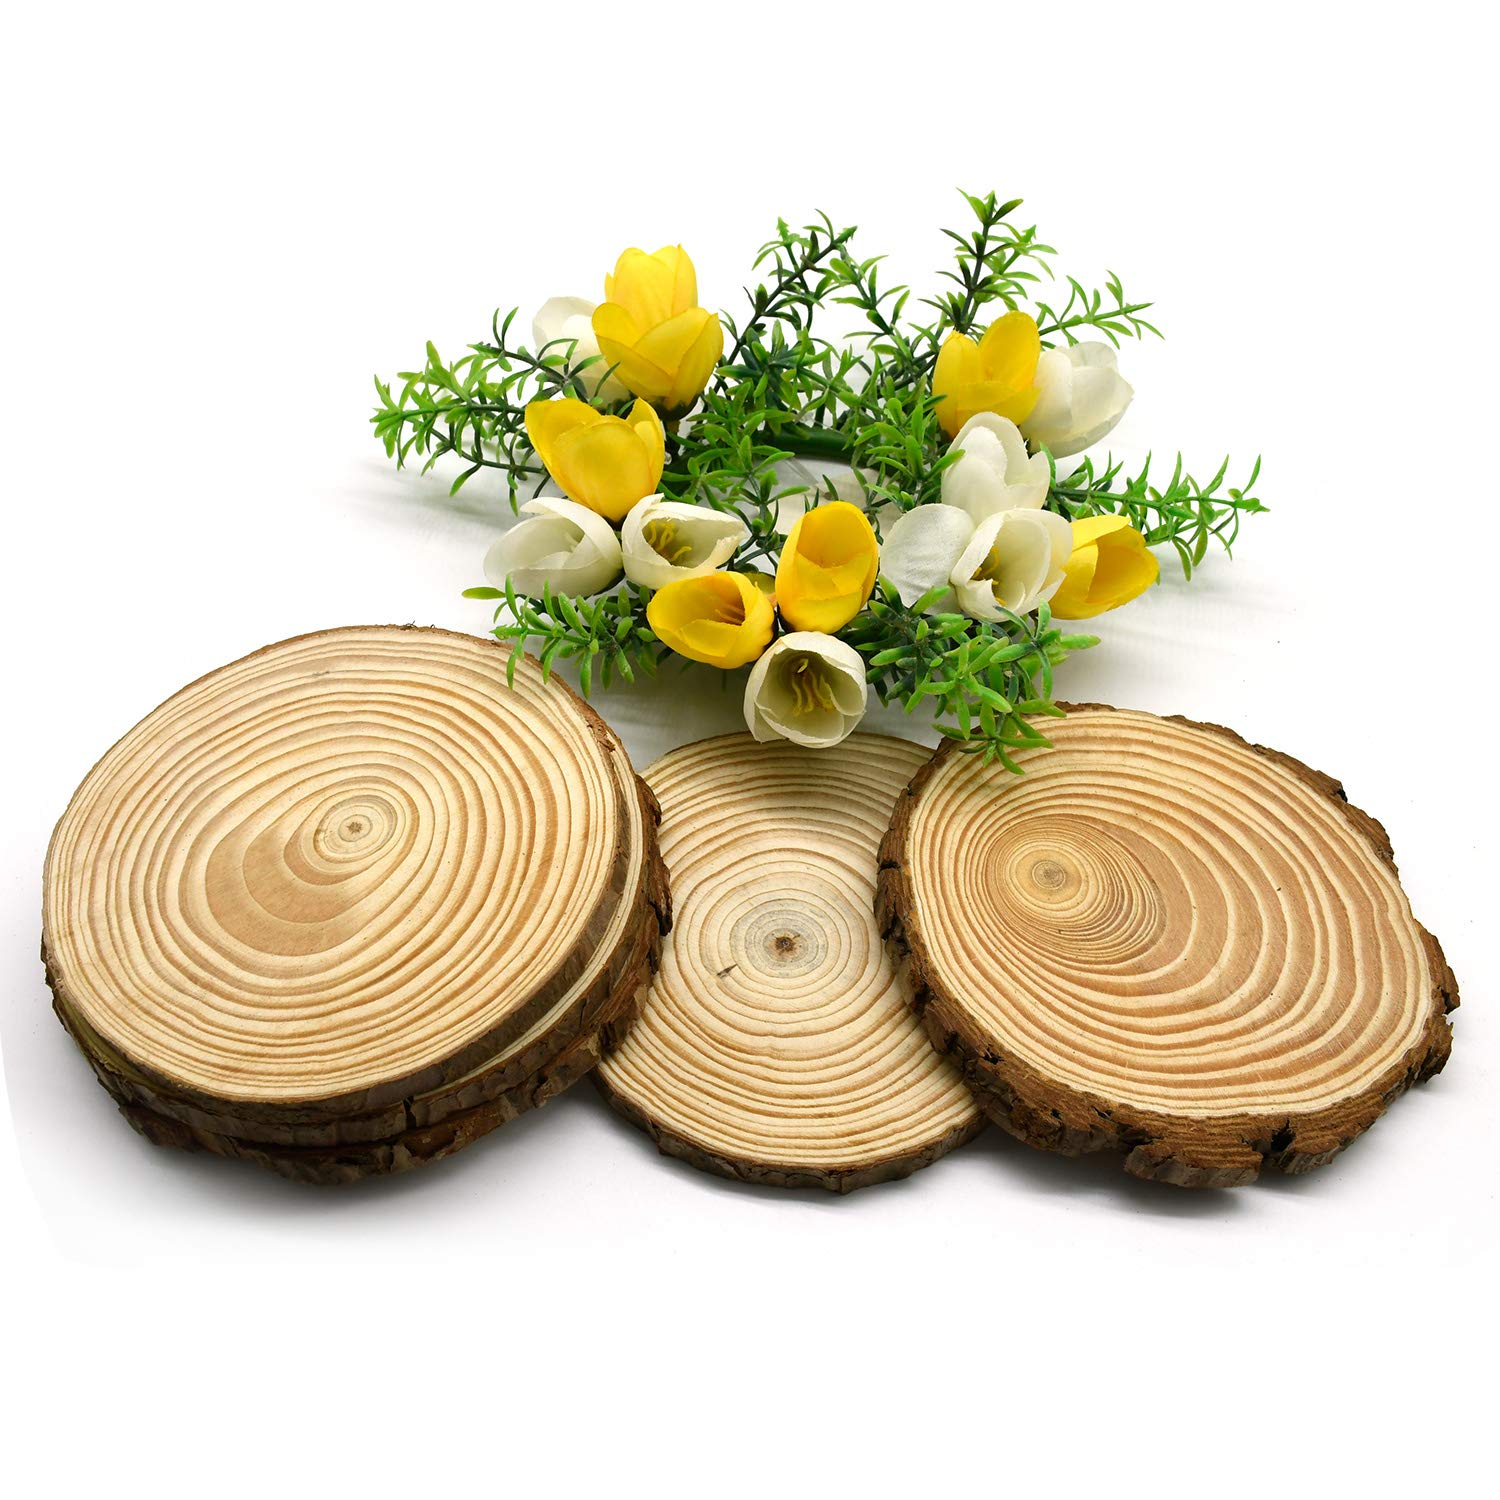 Christmas Cup Mat,Pine Country Round,Extra Large for Woodburning,Home D/écor and Rustic Weddings